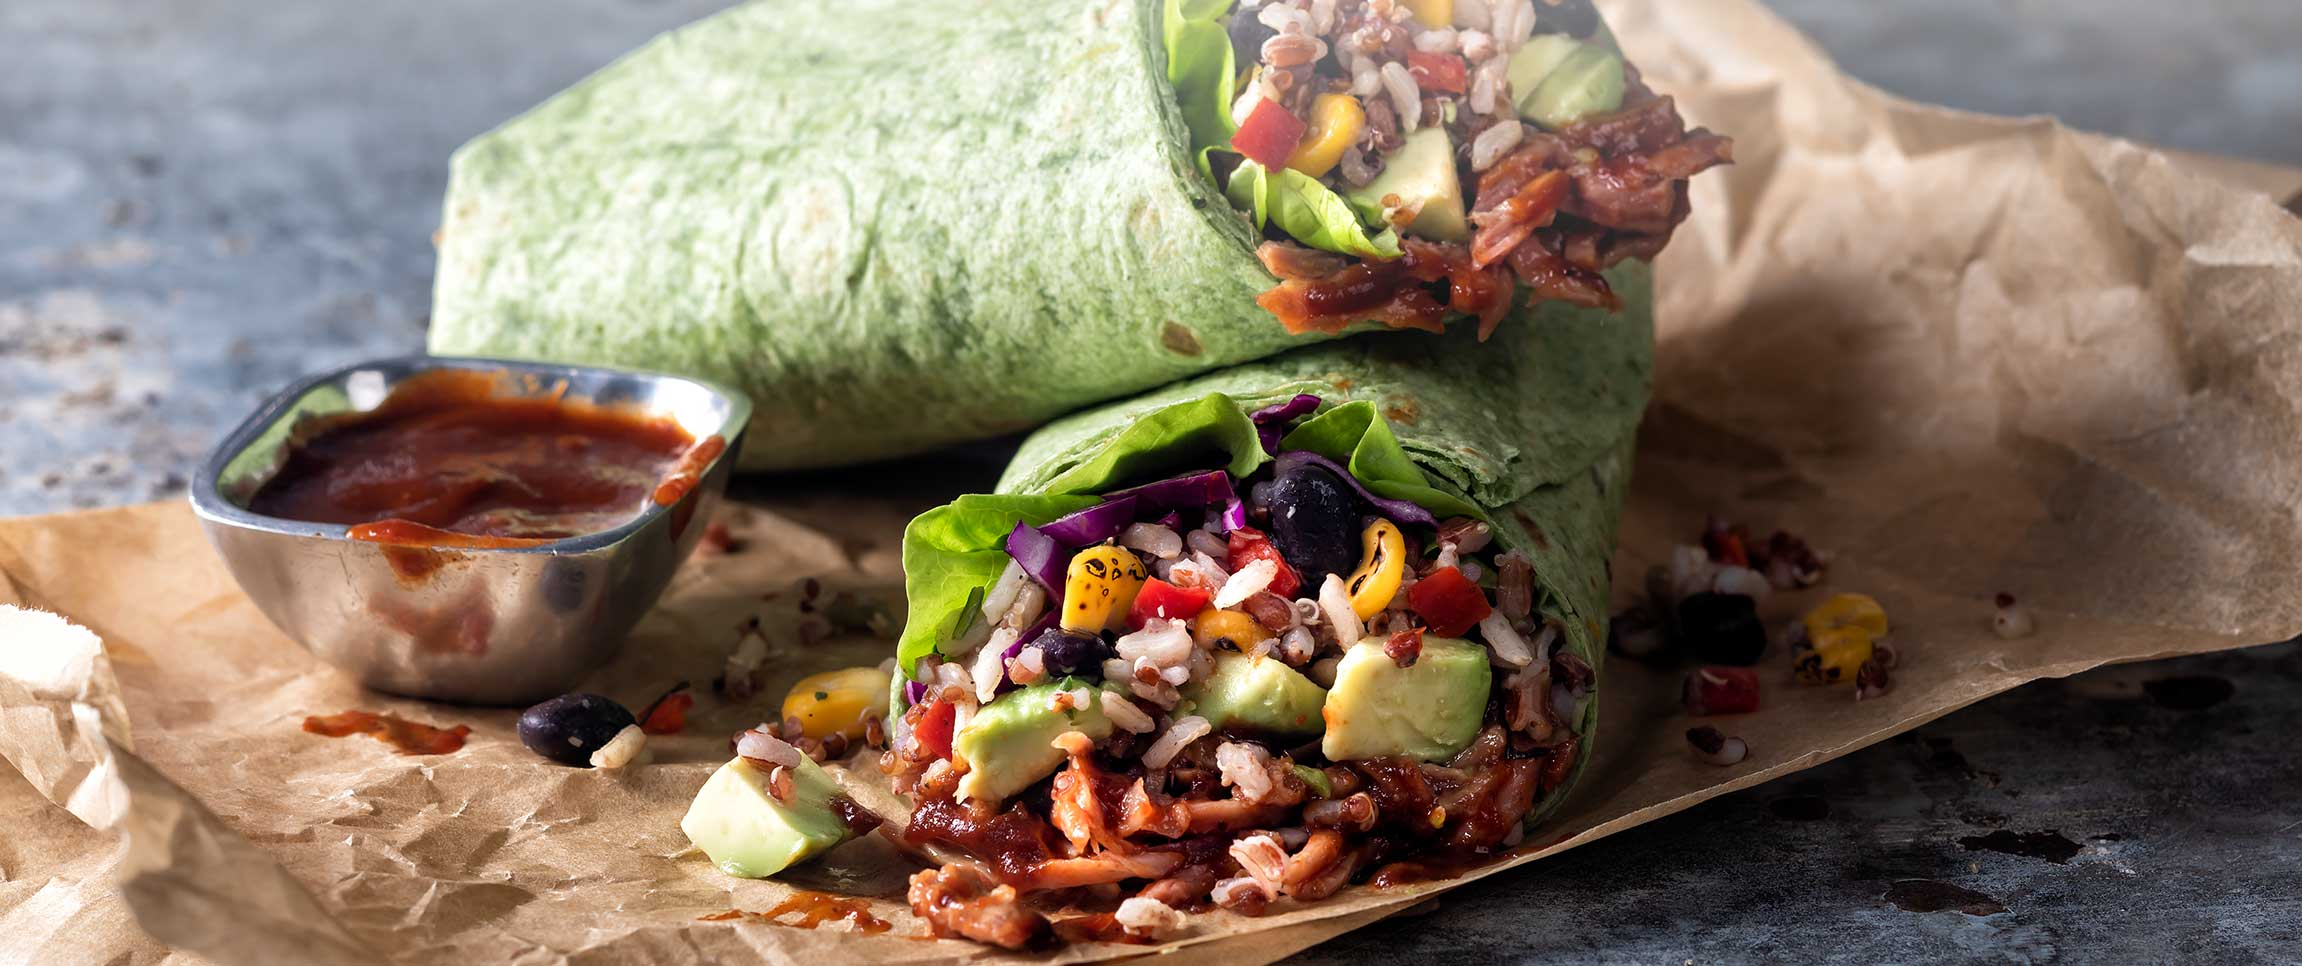 Grains and Fire Roasted Vegetable Chicken Wrap